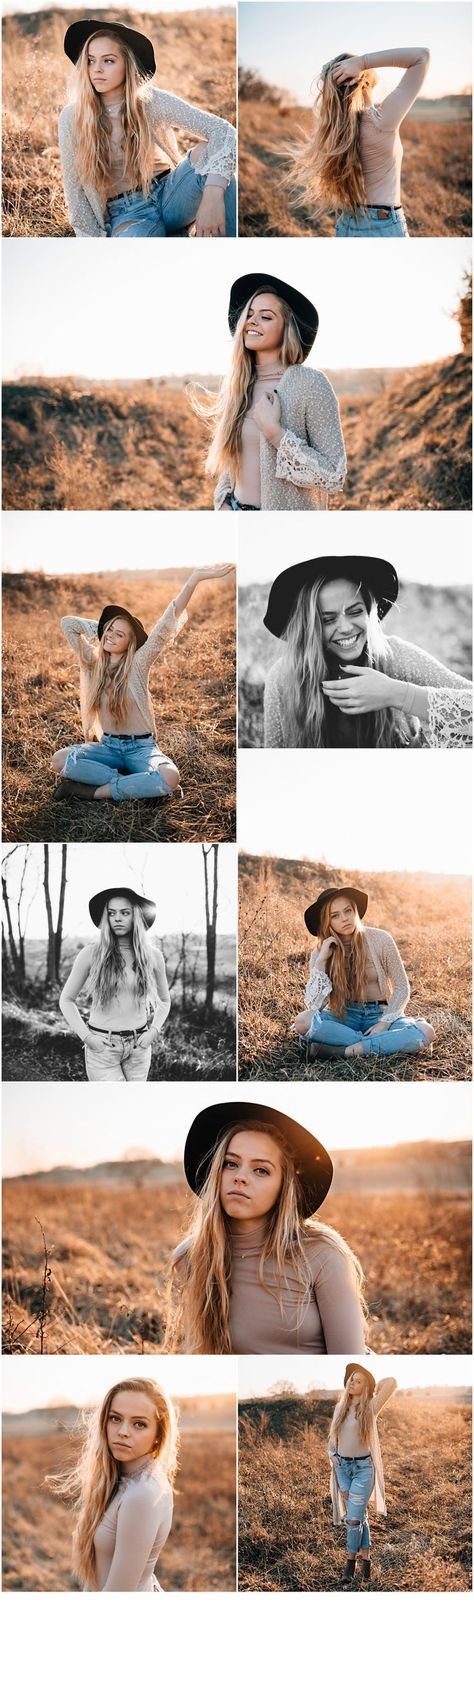 This really appeals to the rustic aesthetic that I really love. I especially love her style and the soft bohemian look of the photos. The poses and angles are what I would like to get for mine.